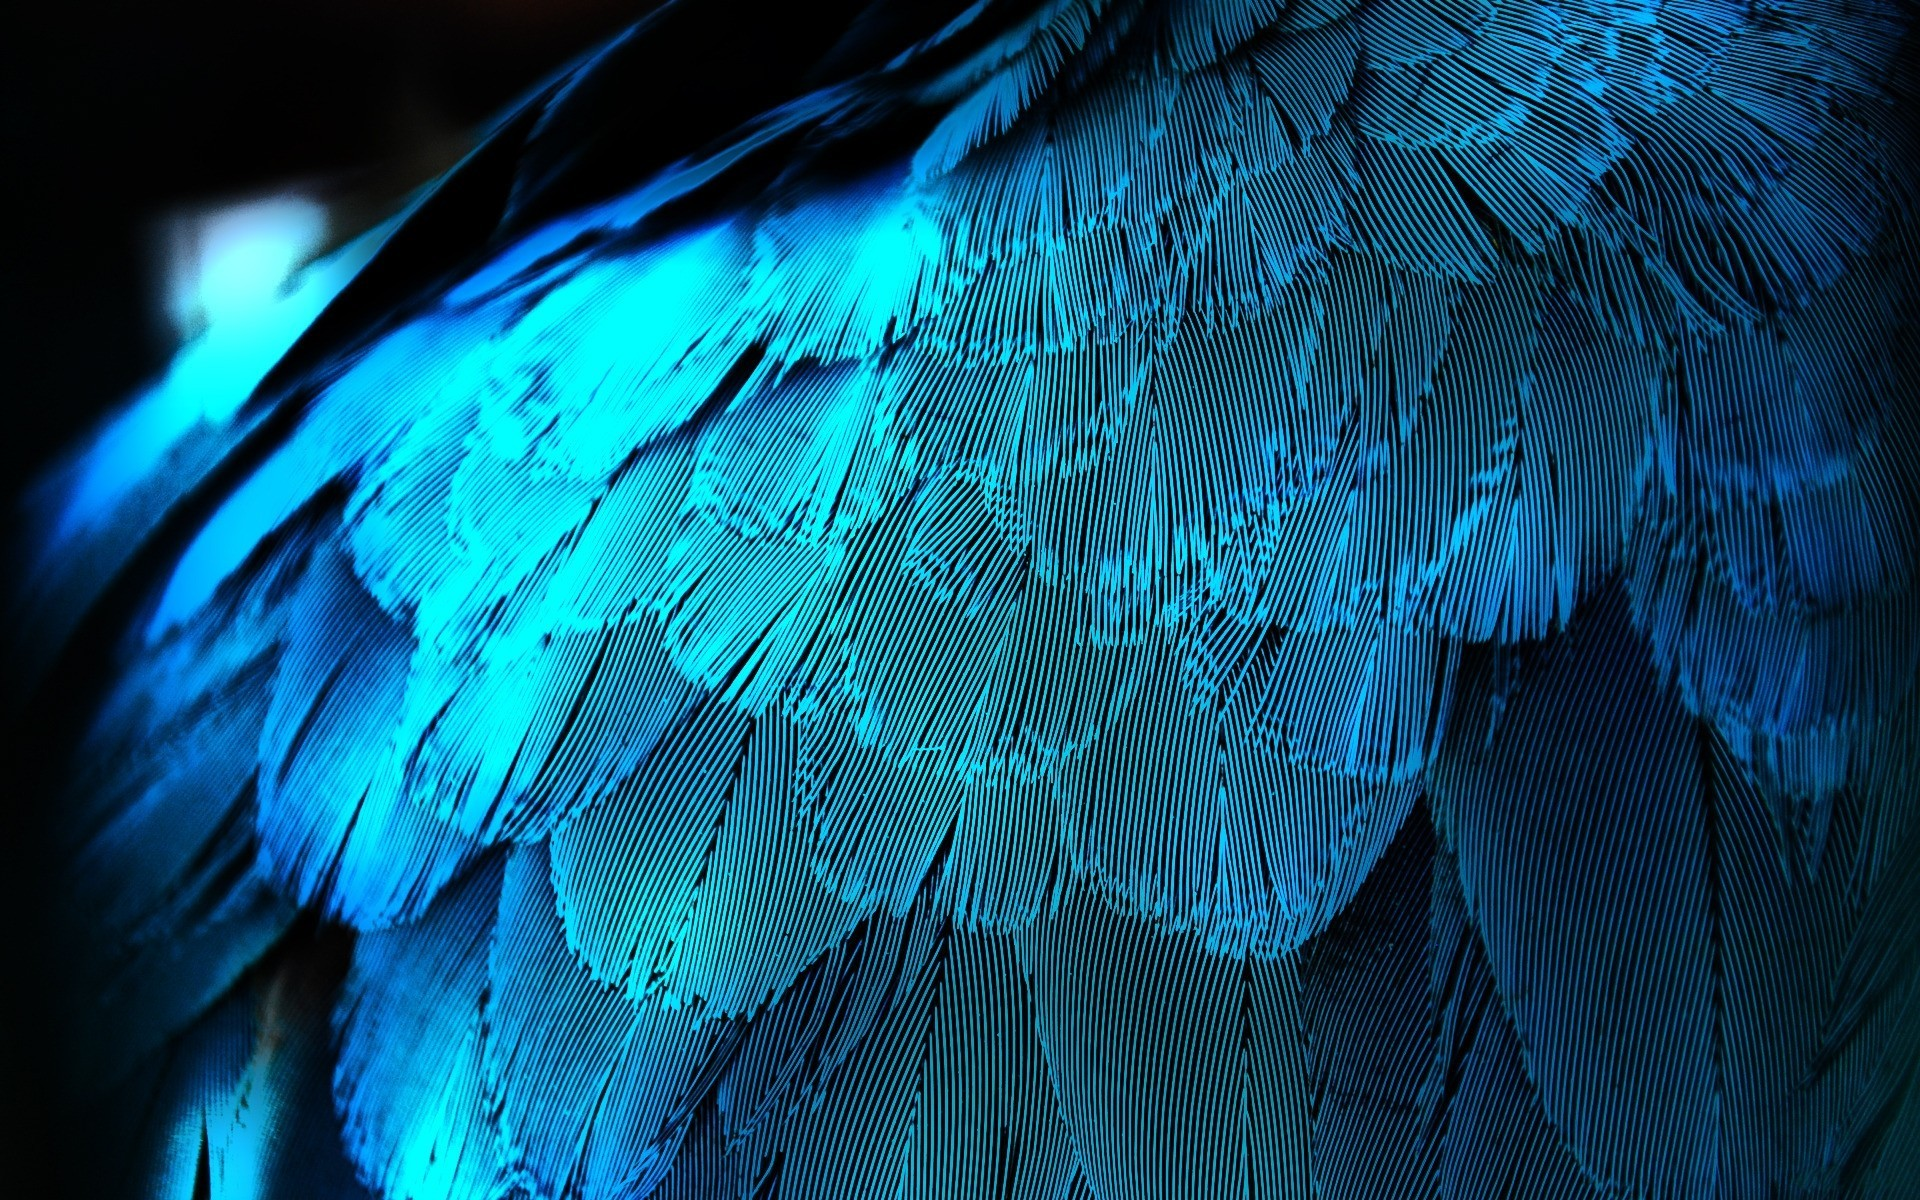 feathers iridescence HD Wallpaper